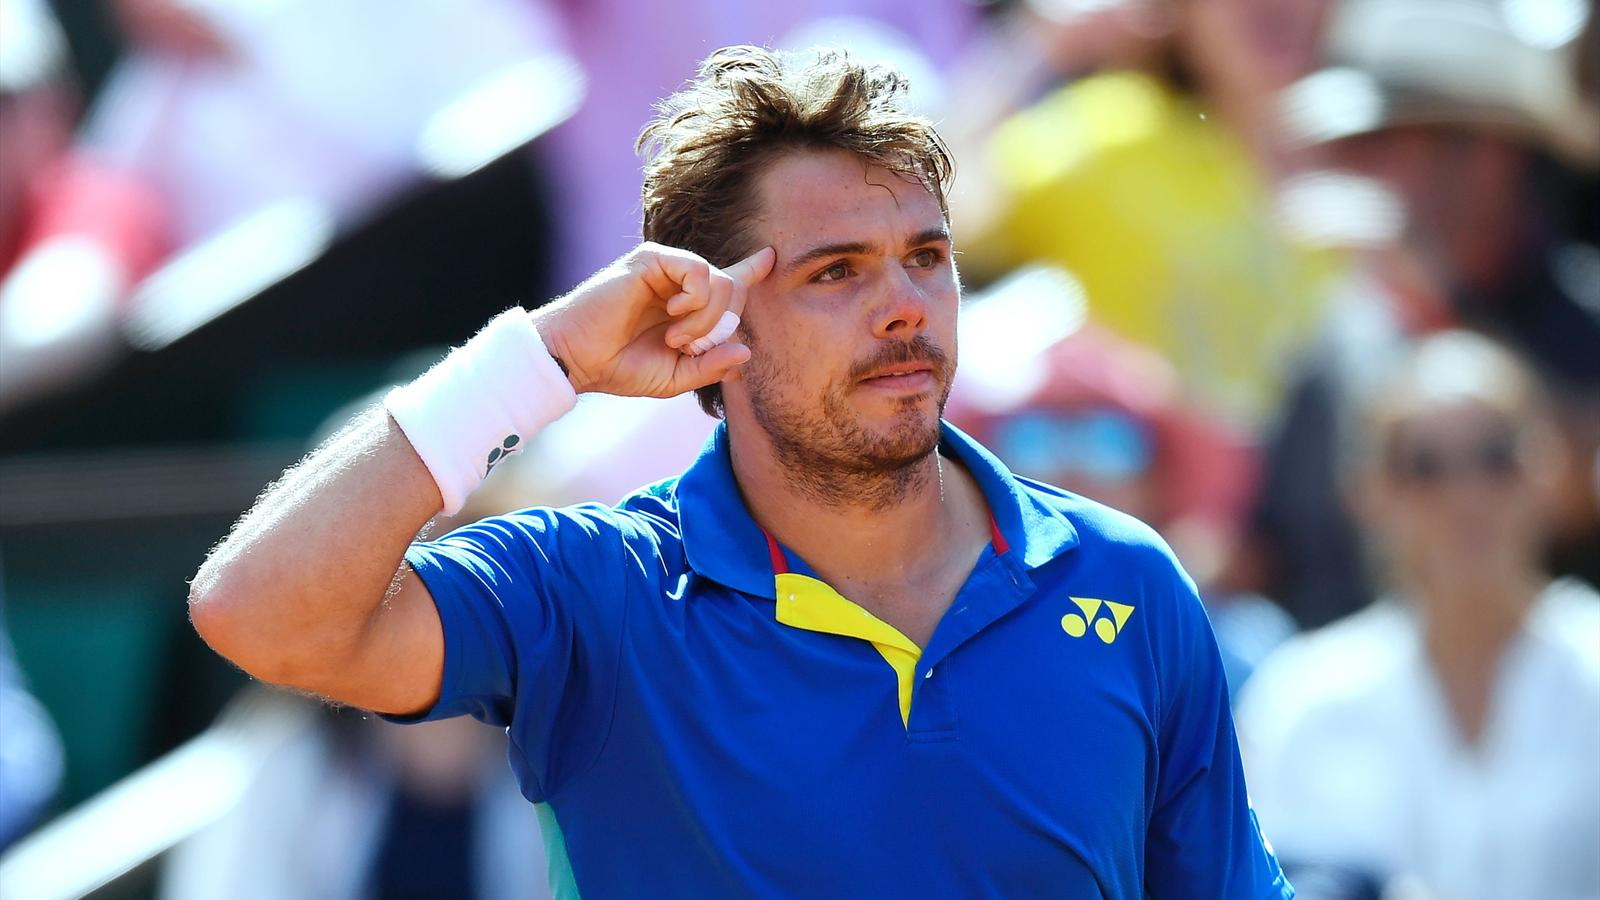 French Open 2017: Stan Wawrinka turns on the style to beat Andy Murray in five-set thriller ...